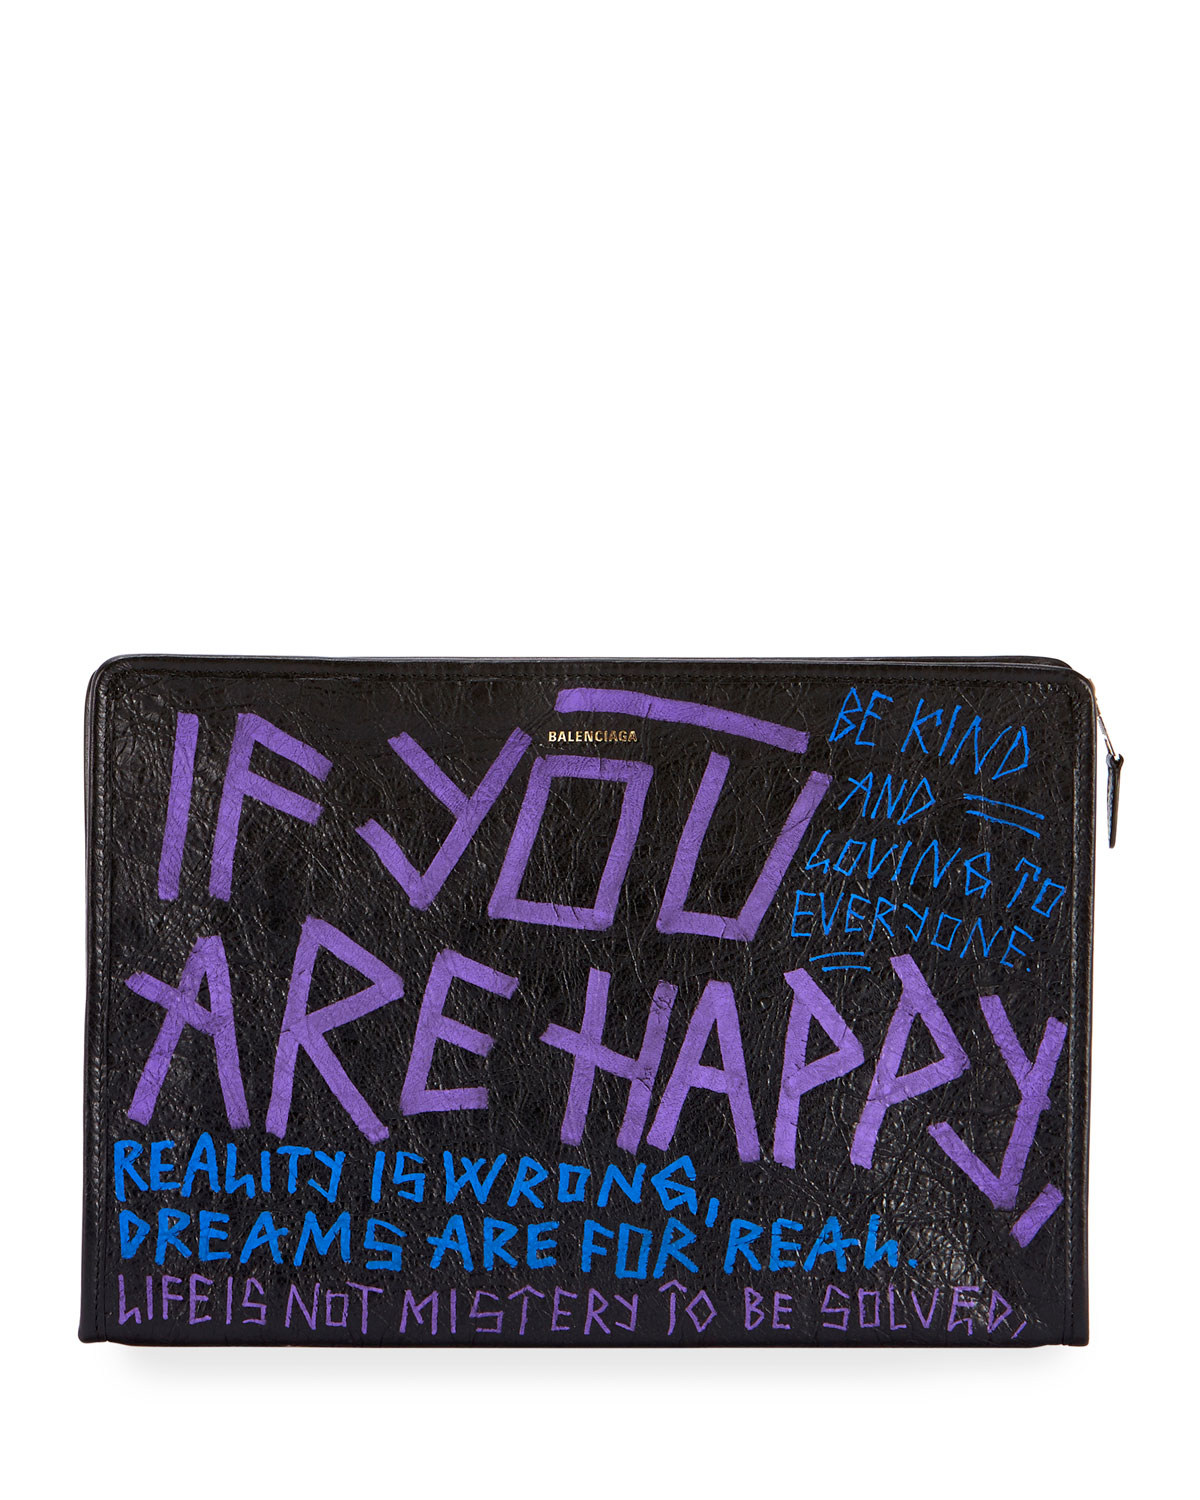 Bazar 'If you are happy, be kind' Graffiti Leather Pouch Bag